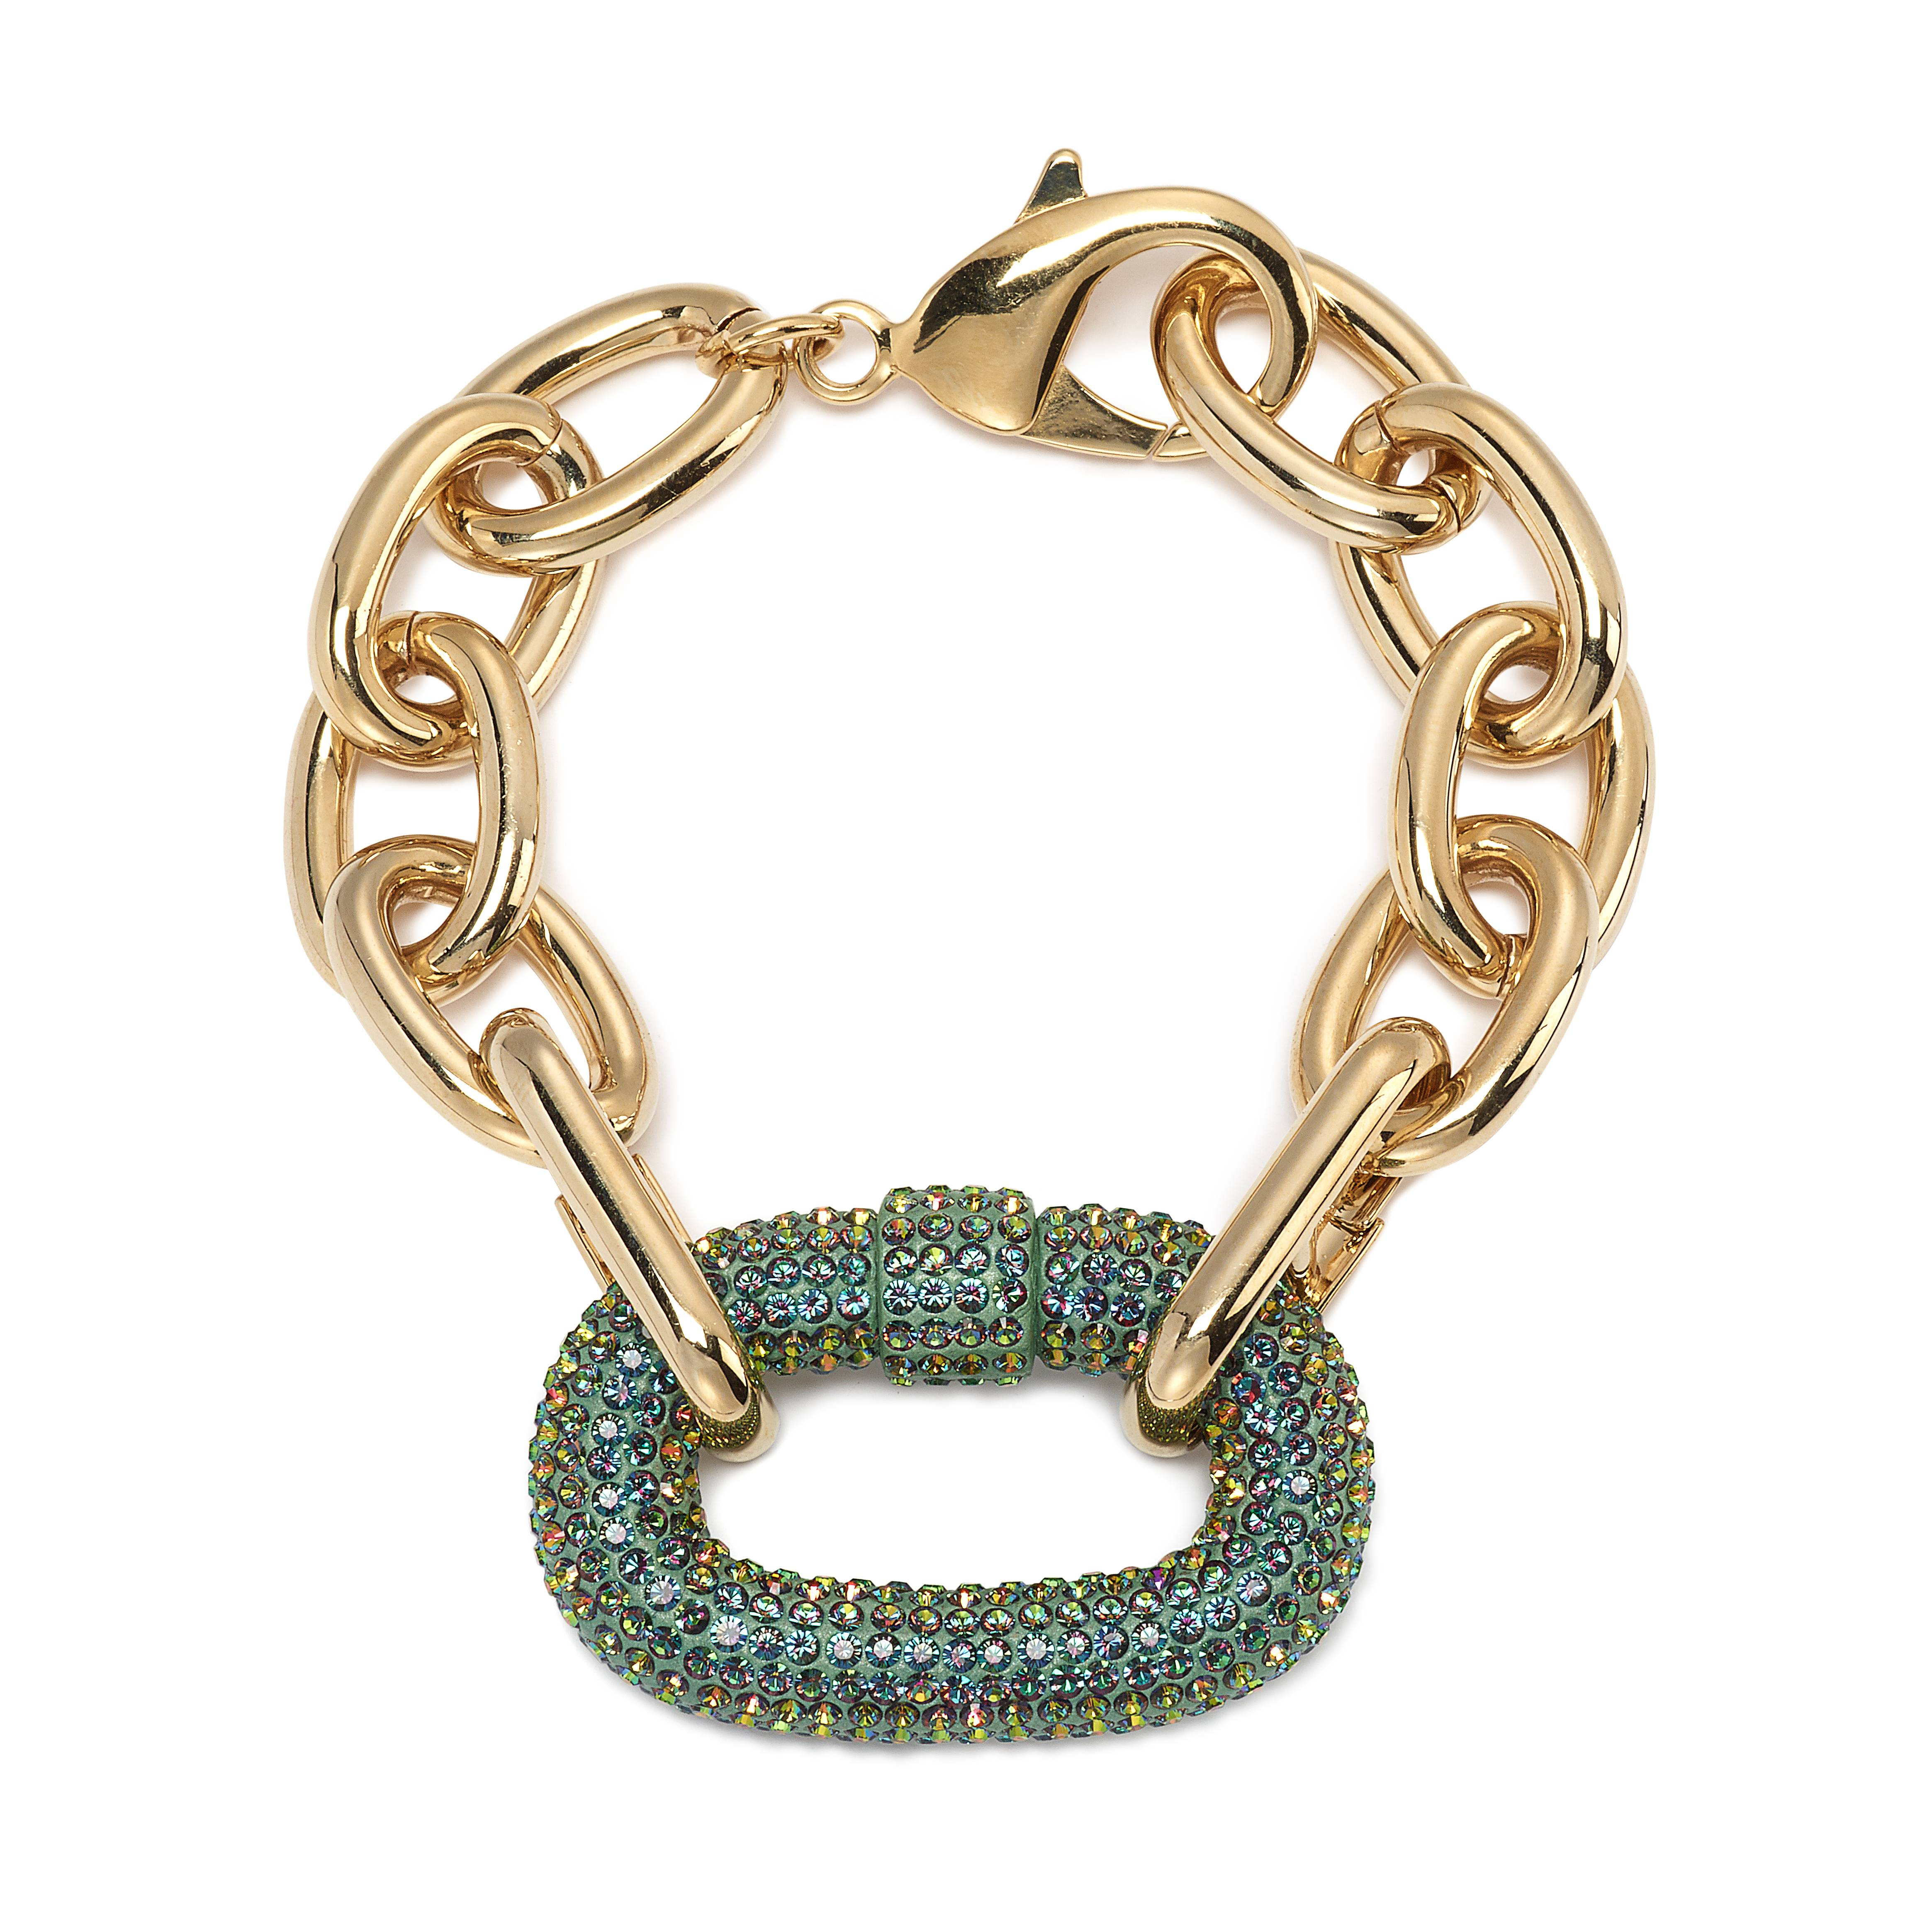 Atelier Swarovski by JC Obando - Vitrail Medium, Glen Bracelet